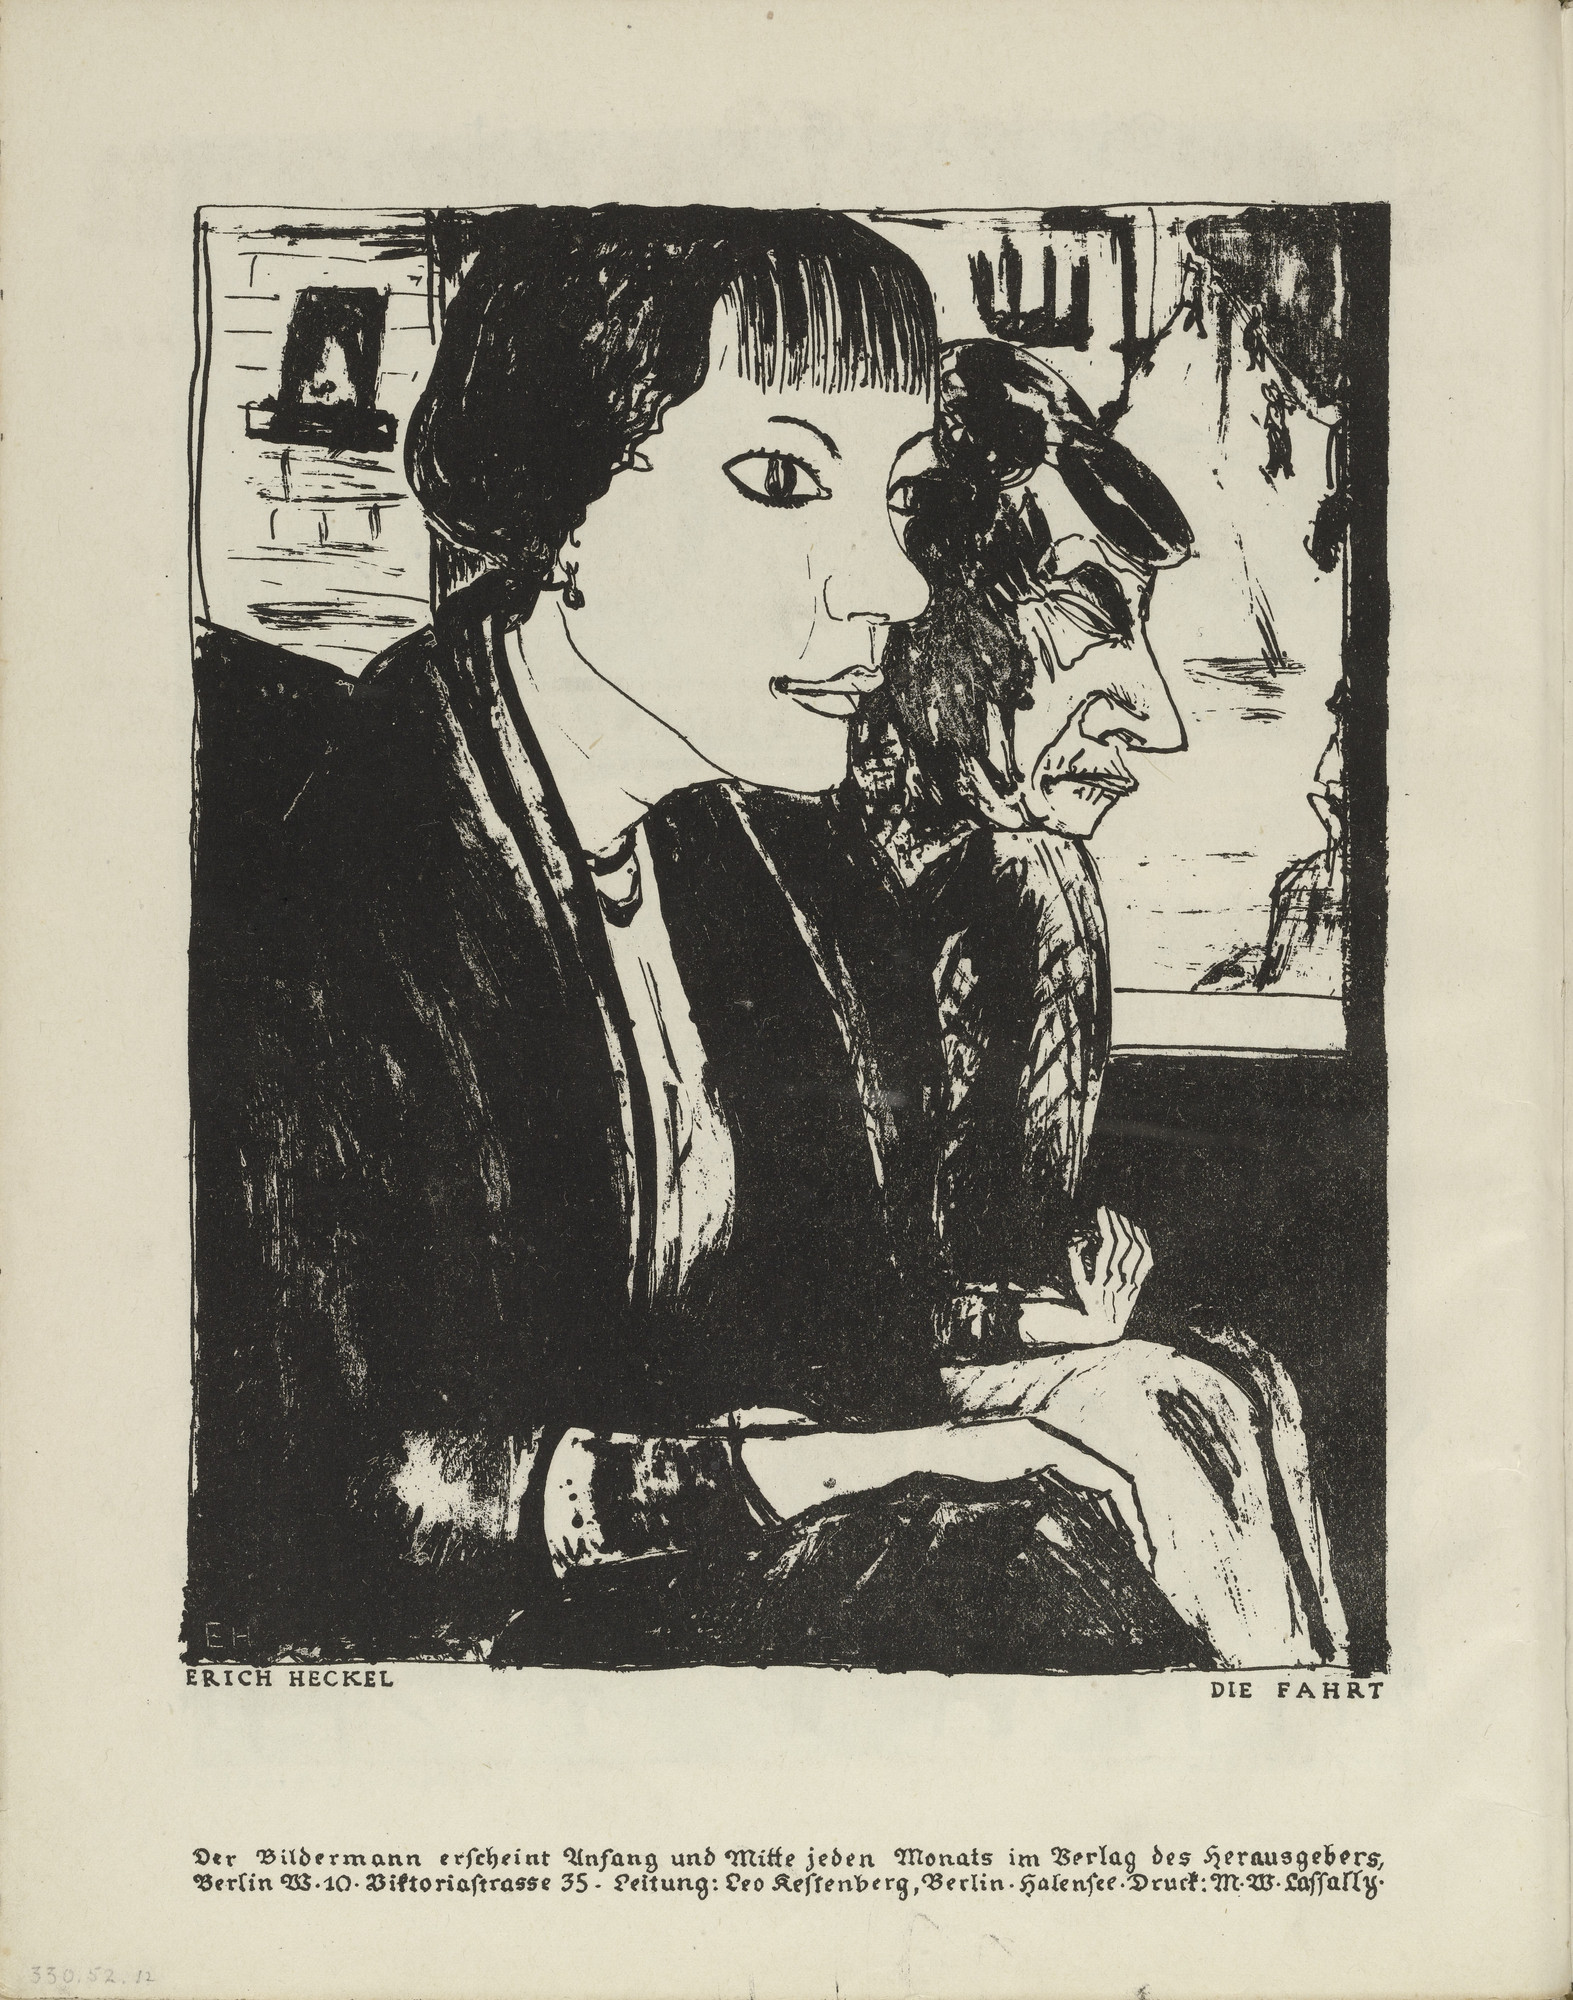 Erich Heckel. The Ride (Die Fahrt) (plate, folio 7 verso) from the periodical Der Bildermann, vol. 1, no. 3 (May 1916). 1916